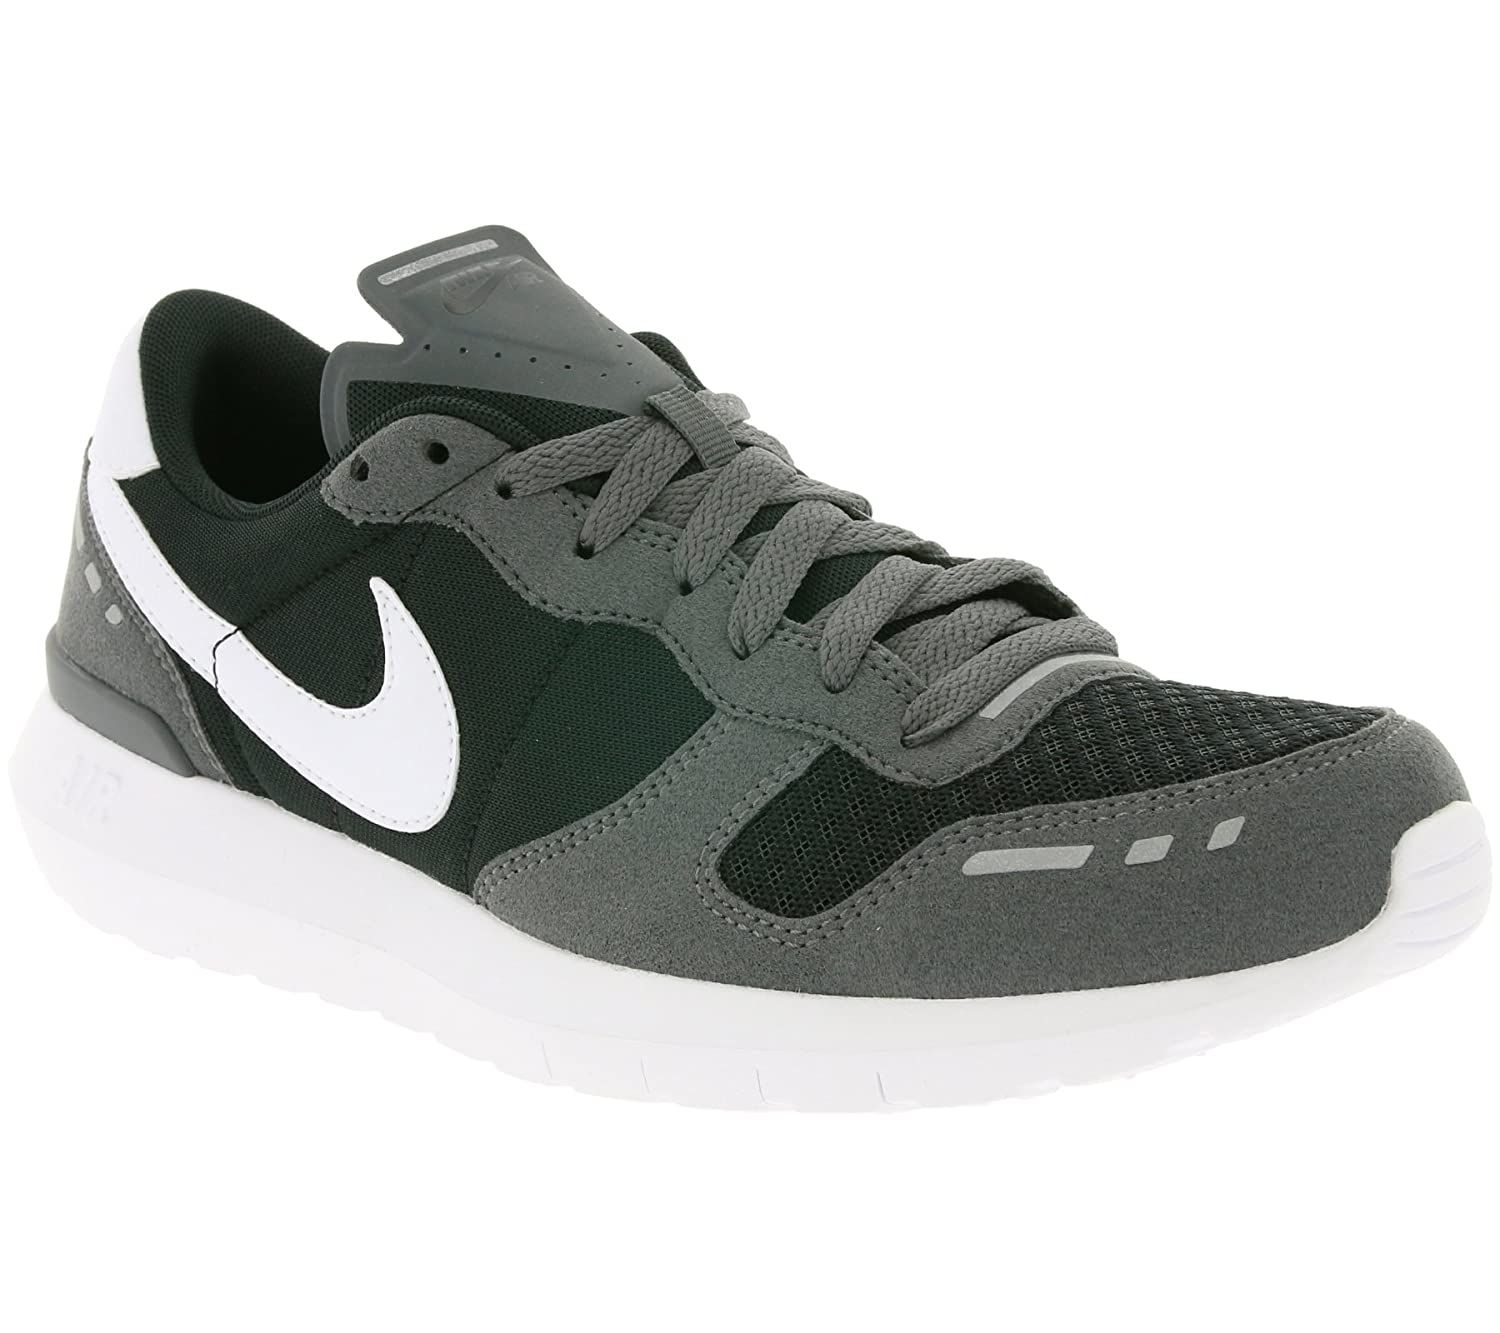 Nike Air Vortex 2017 Sneaker Turnschuhe Schuhe fuuml;r Herren  42.5 EU|BLACK/WHITE-DARK GREY-WHITE